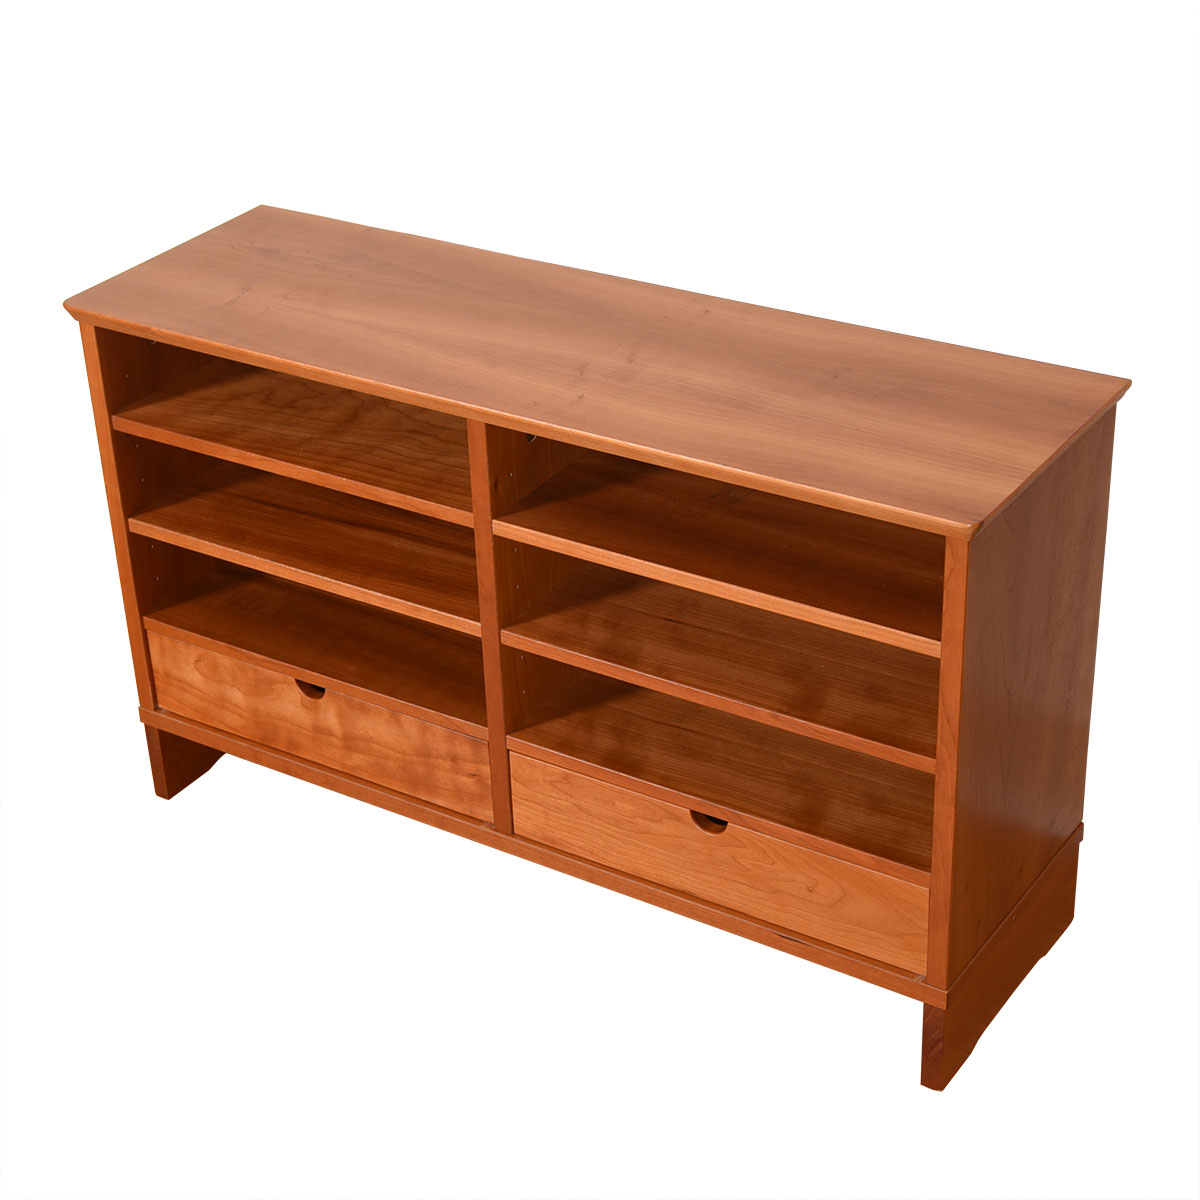 Solid Cherry Desk Organizer w/ Drawers & Open Storage